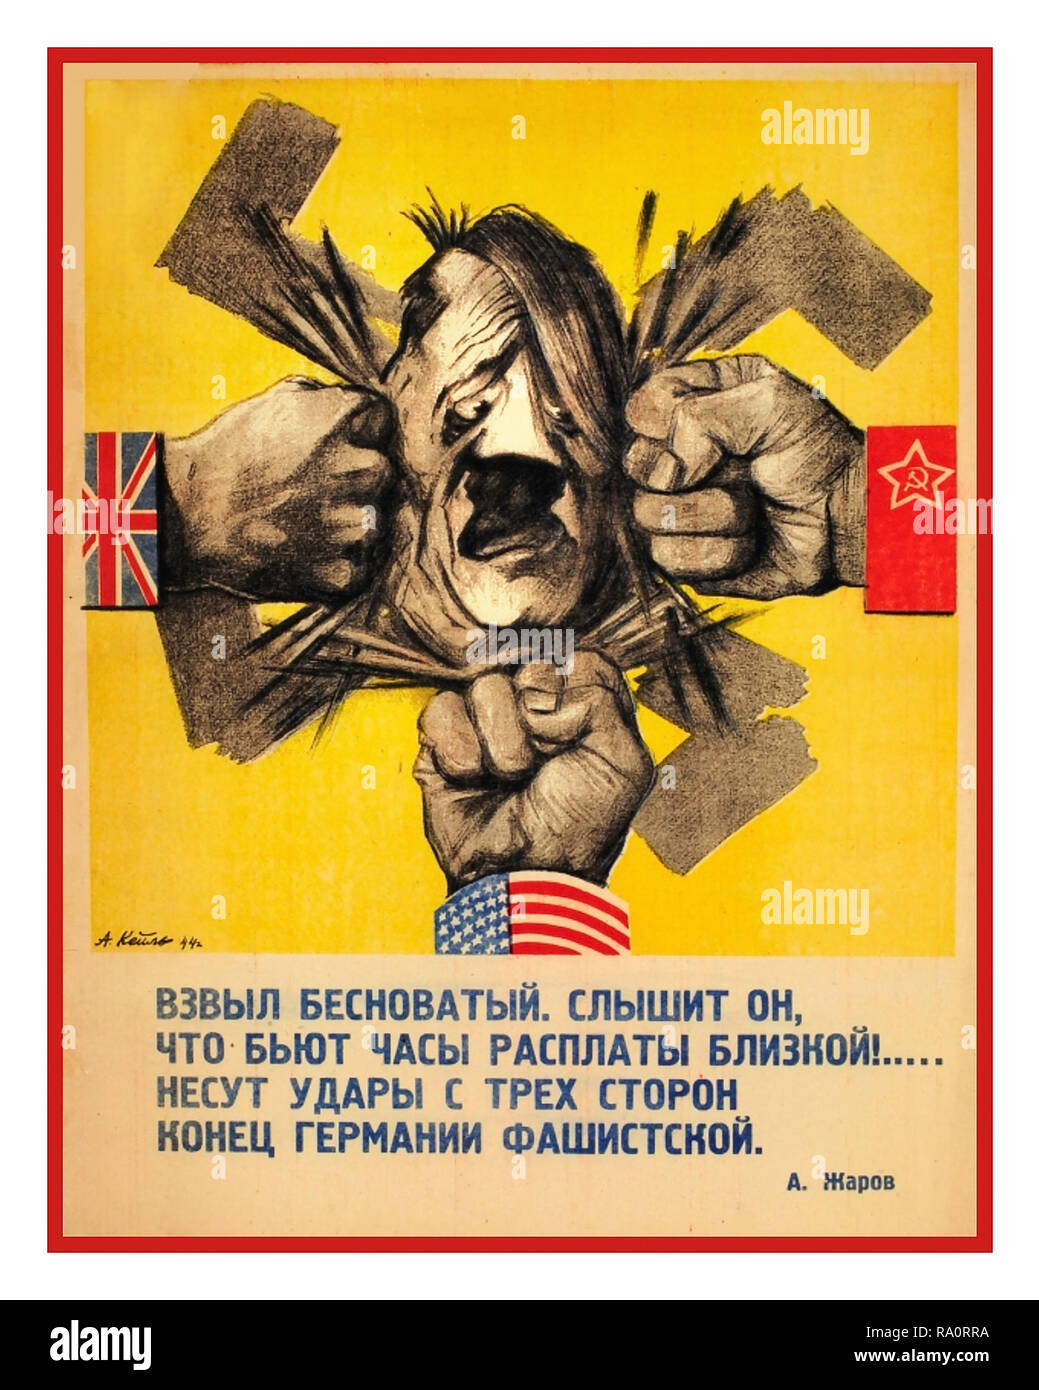 Vintage WW2 1940's Russian Soviet USSR Propaganda Poster featuring caricature of Nazi Adolf Hitler being hit on all sides by fists bearing the flags of The Grand Alliance: United Kingdom United States and Soviet Russia Stock Photo